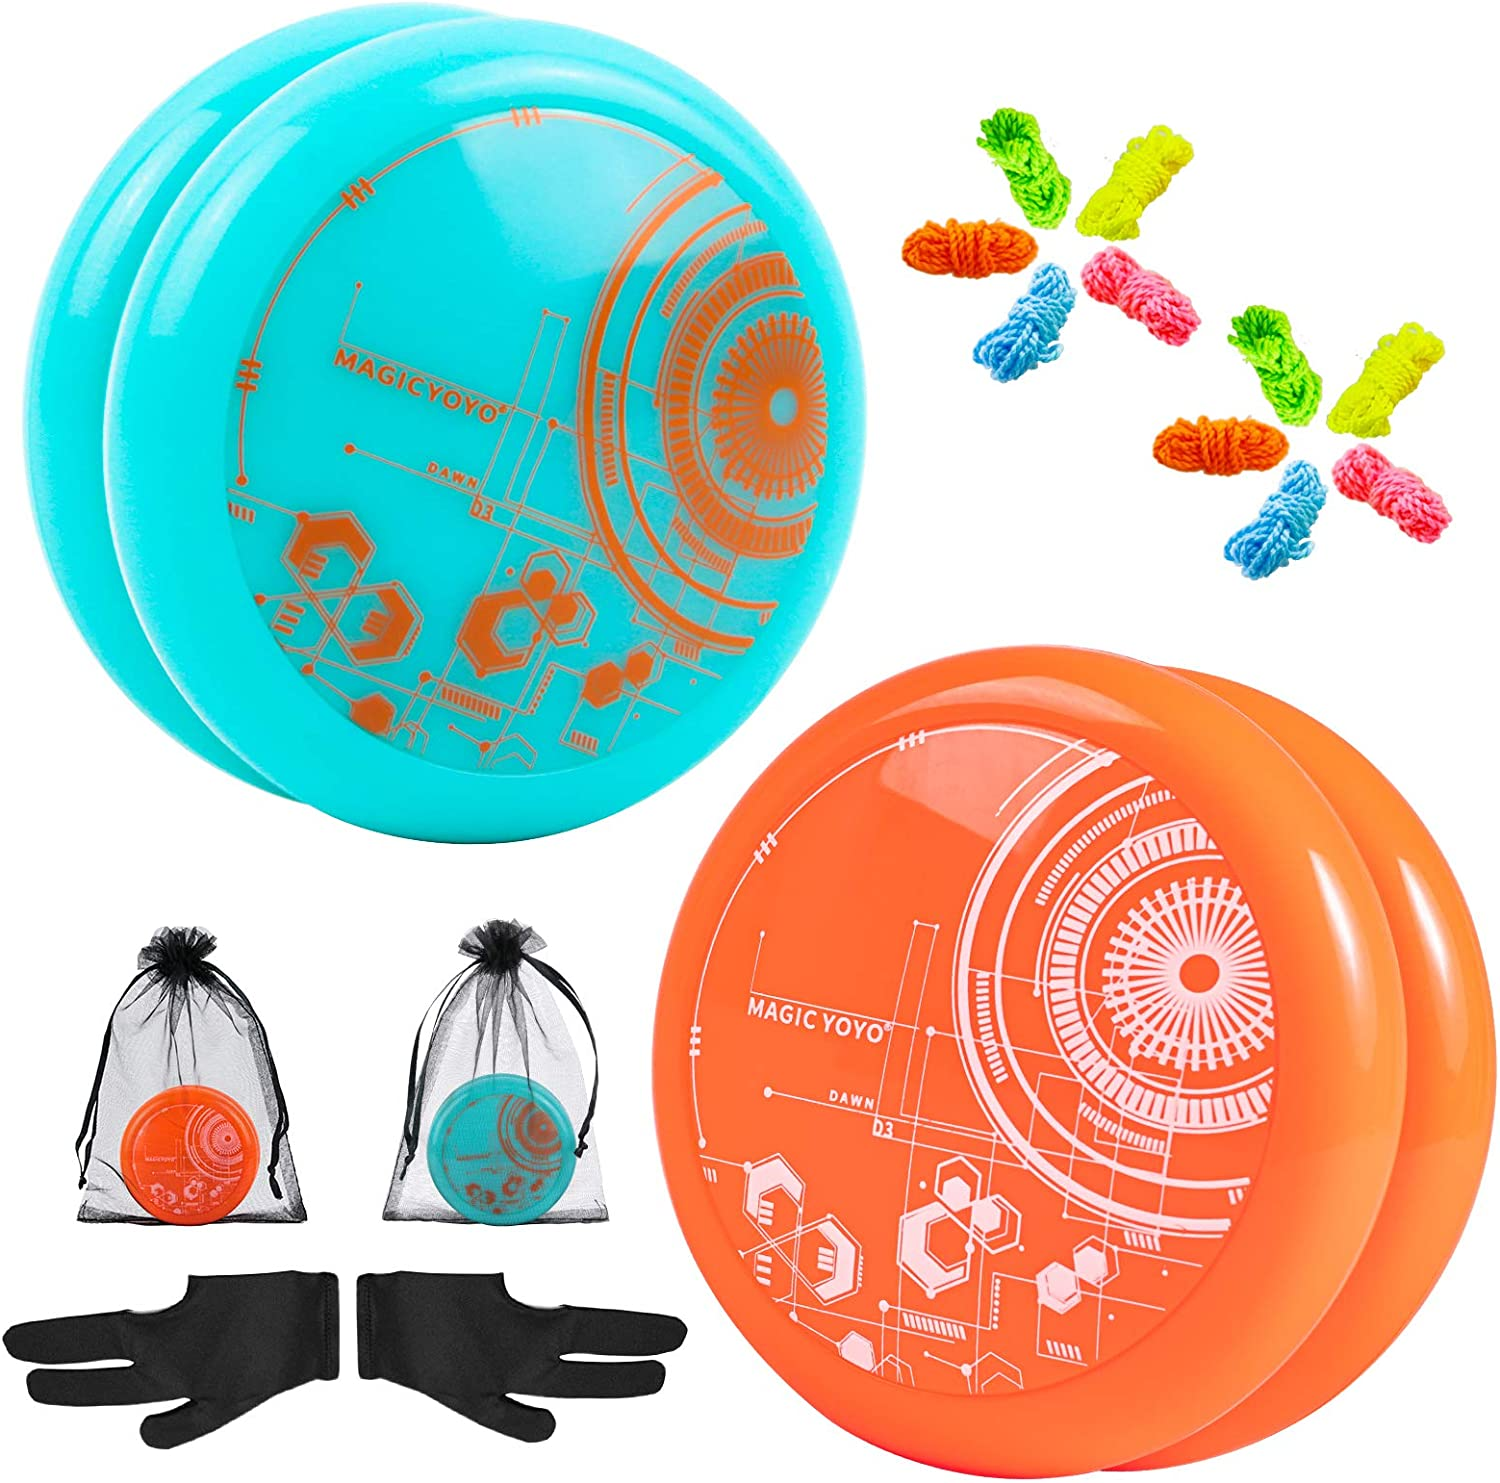 Blue+Orange Professional 2A Looping Yoyo for Beginners to Play Basic Looping Yoyo Ticks with Extra 10 Yoyo String 2 Pack MAGICYOYO Responsive Yoyos for Kids D3 Dawn 2 Gloves 2 Gift Bag